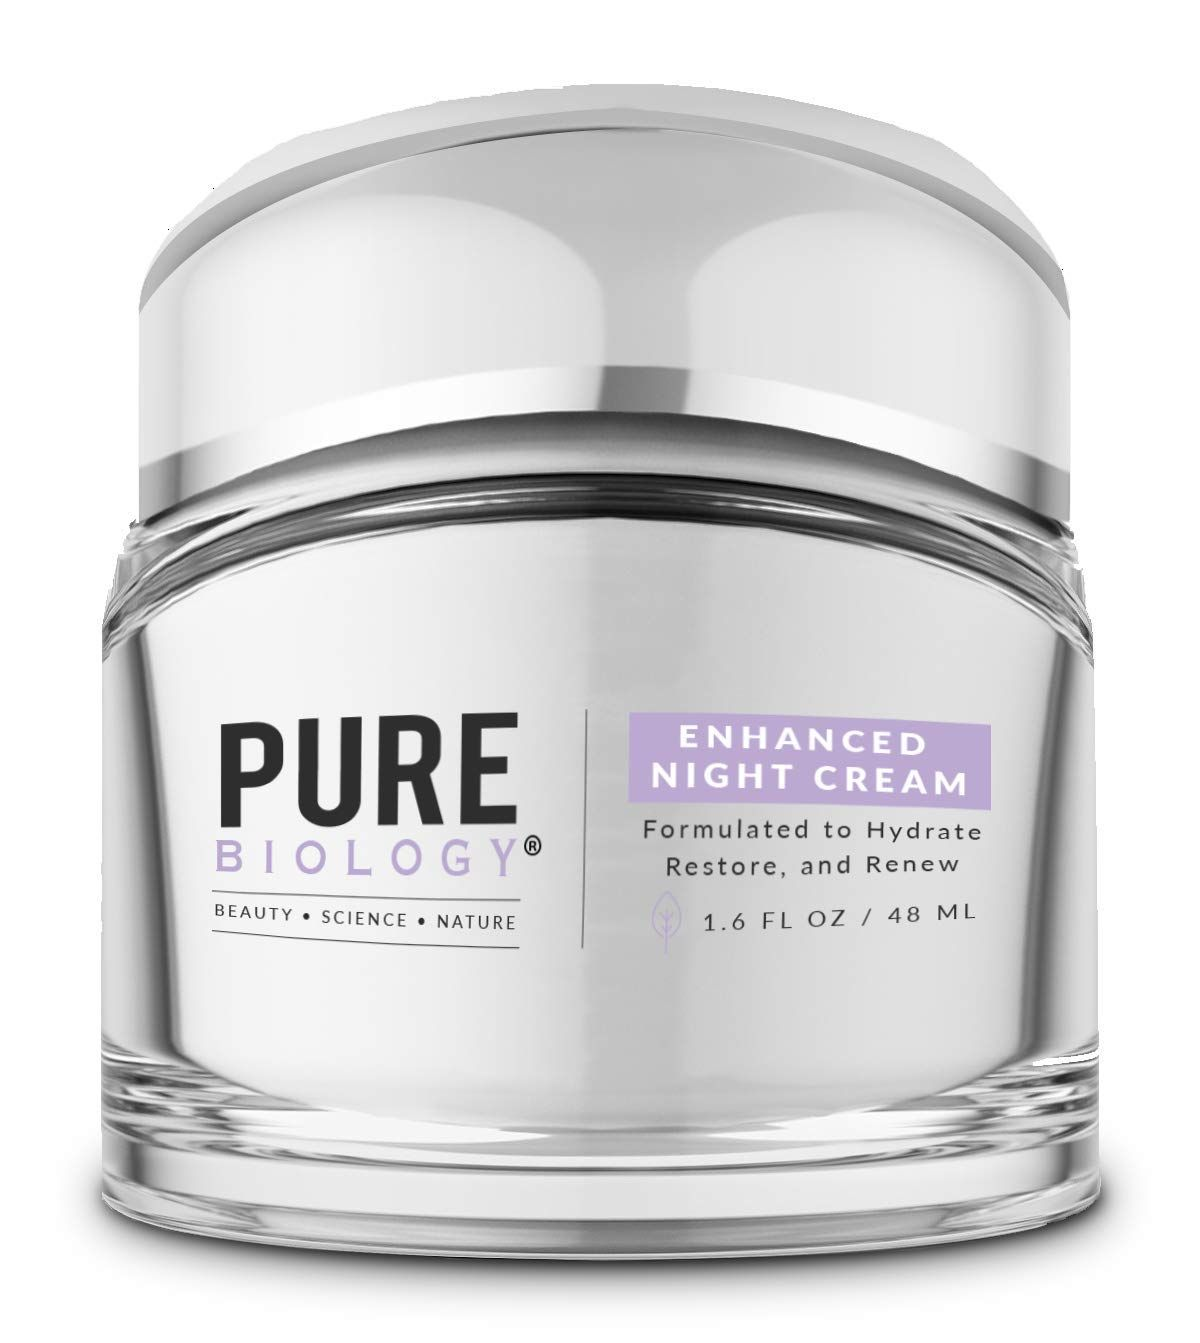 Pure Biology Premium Night Cream Face Moisturizer With Clinically Studied Syn Coll In 2020 Anti Aging Face Cream Face Cream For Wrinkles Face Moisturizer